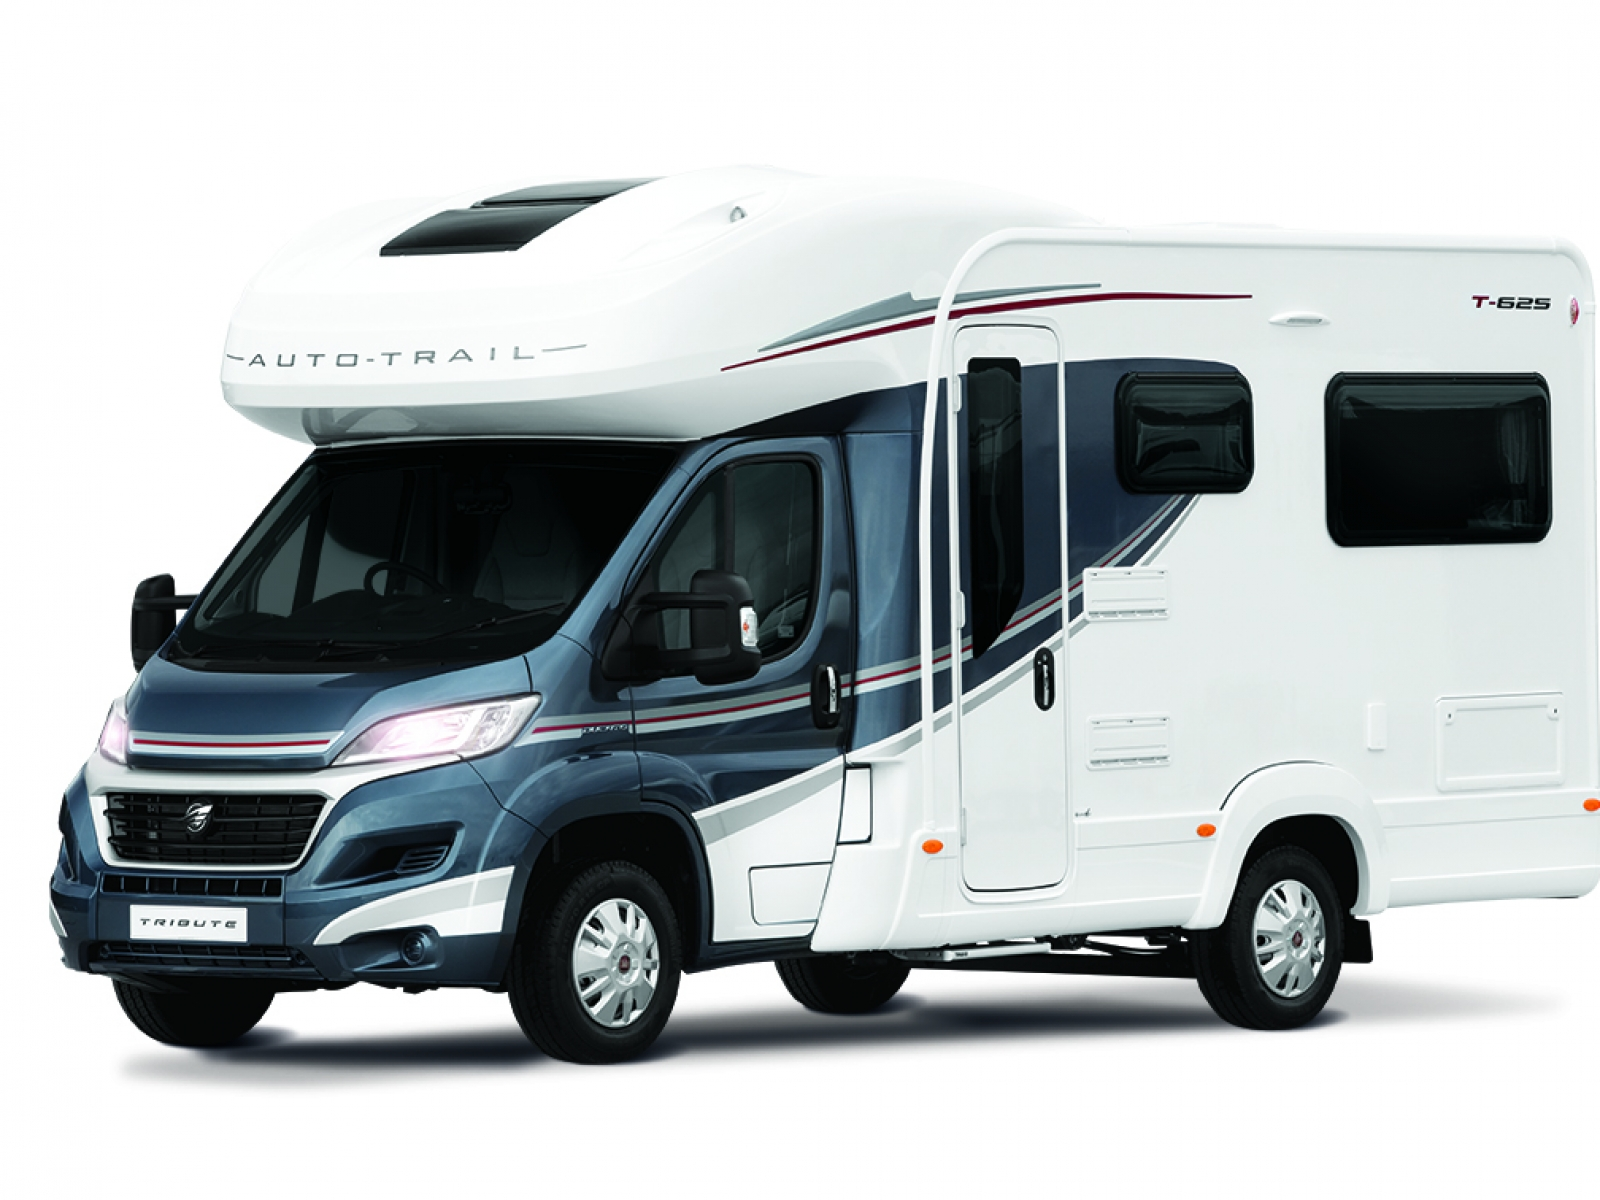 Auto-Trail Tribute T-625 image